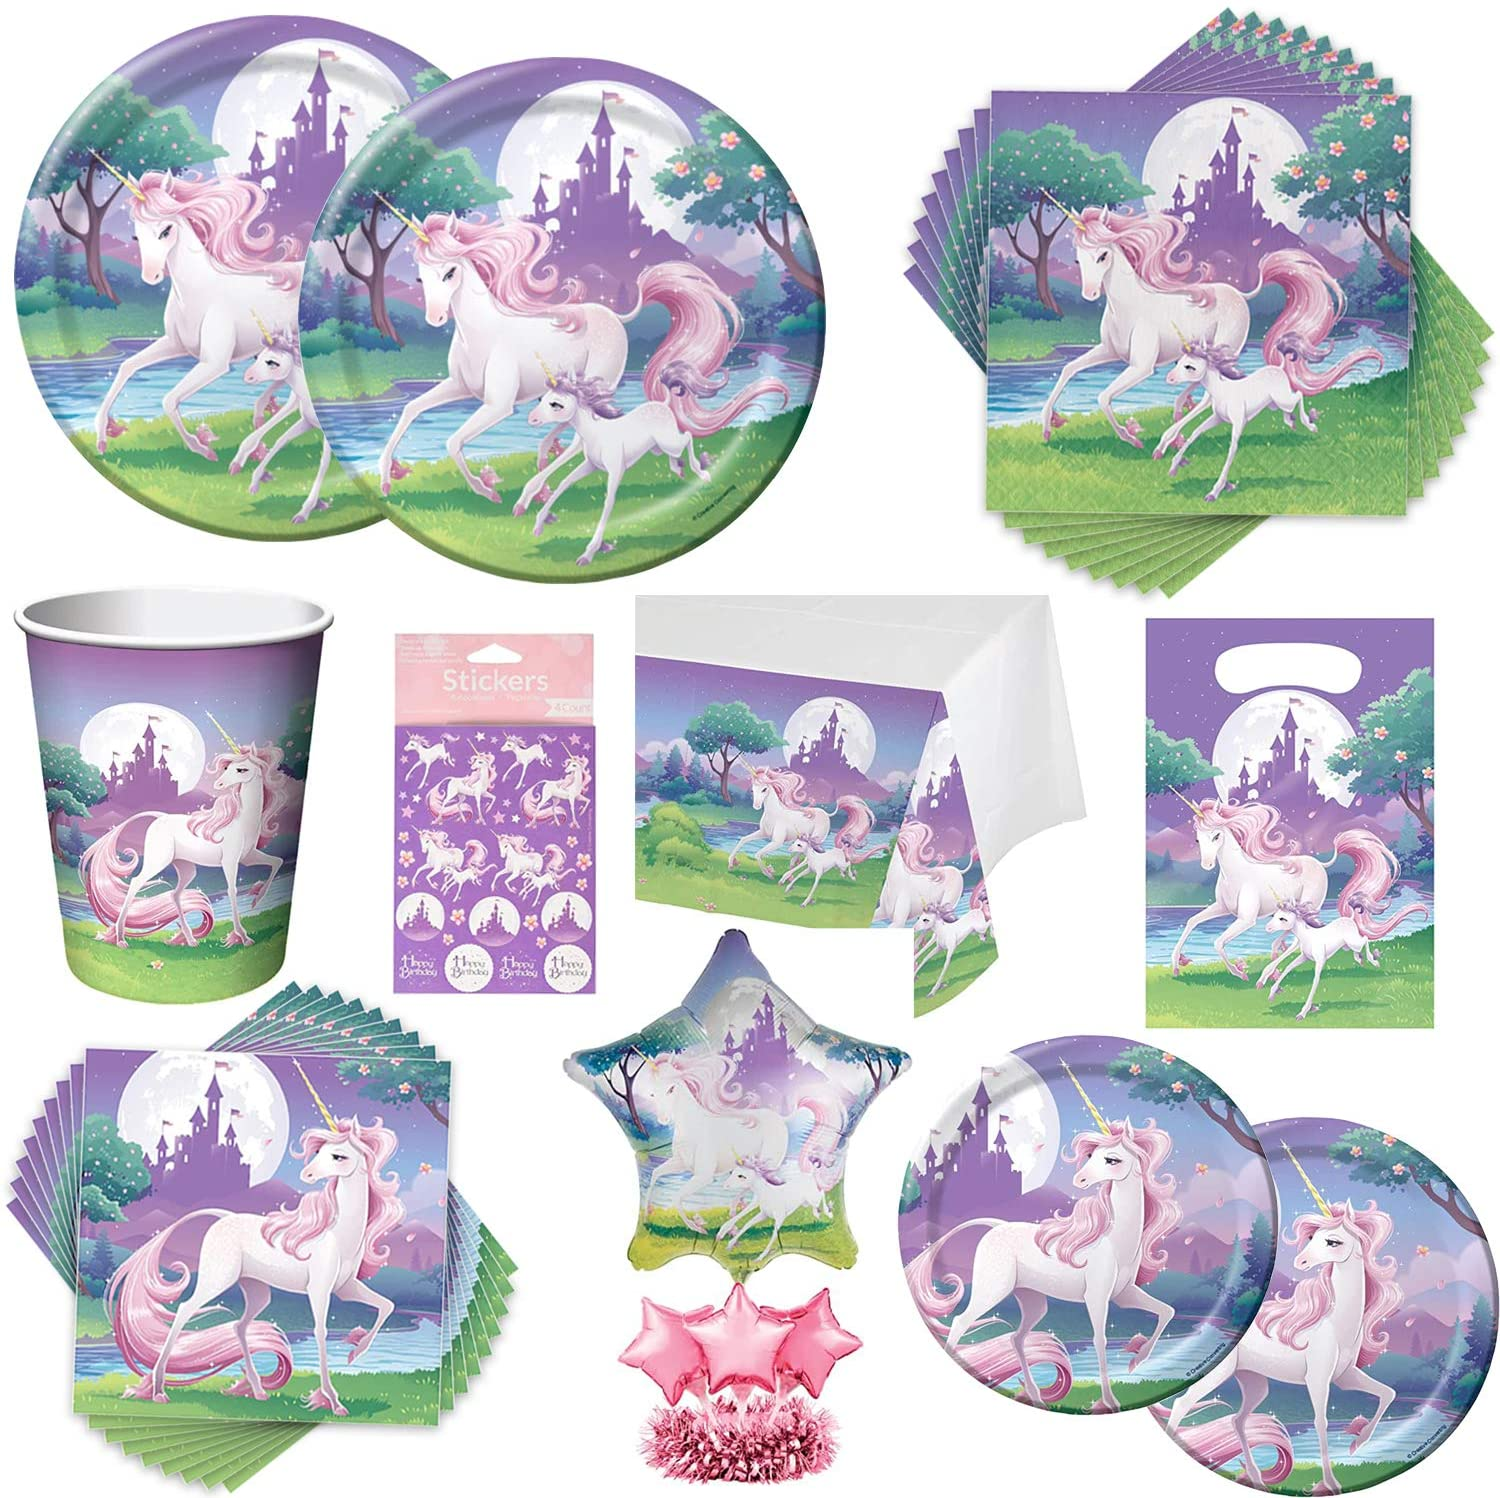 Unicorn Party Supplies Unicorn Fantasy Birthday Party with Plates, Napkins, Cups, Table Cover, Stickers, Treat Bags & Balloon Center Piece for 16 Guests